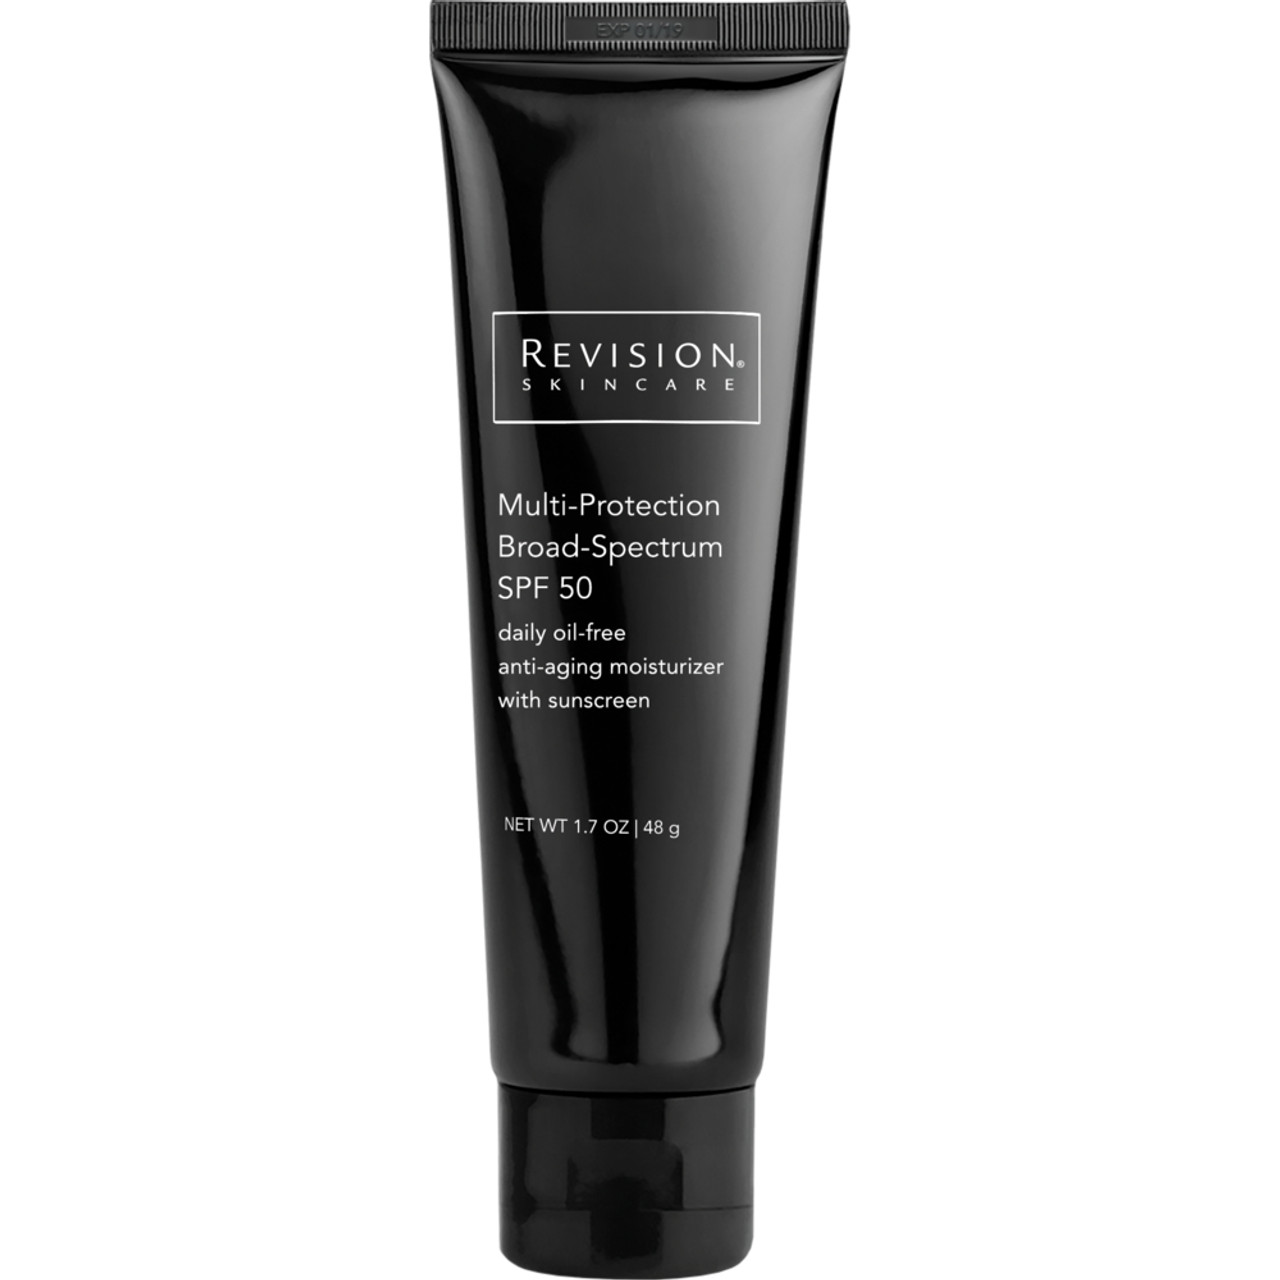 Revision Multi-Protection Broad-Spectrum SPF 50 BeautifiedYou.com